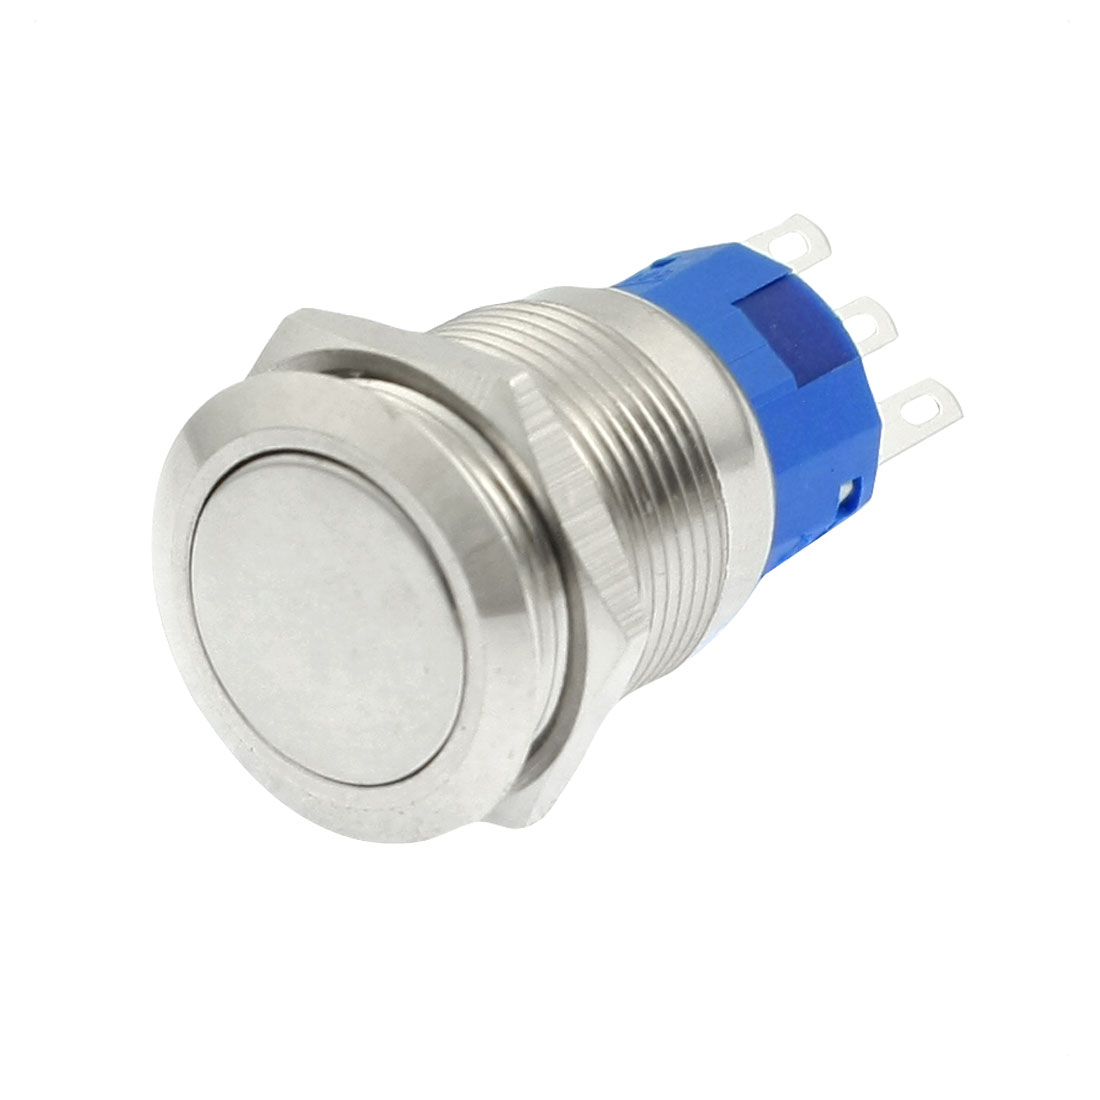 SPDT 19mm Stainless Steel Round Latching Push Button Switch 3 Poles 5A 250V AC